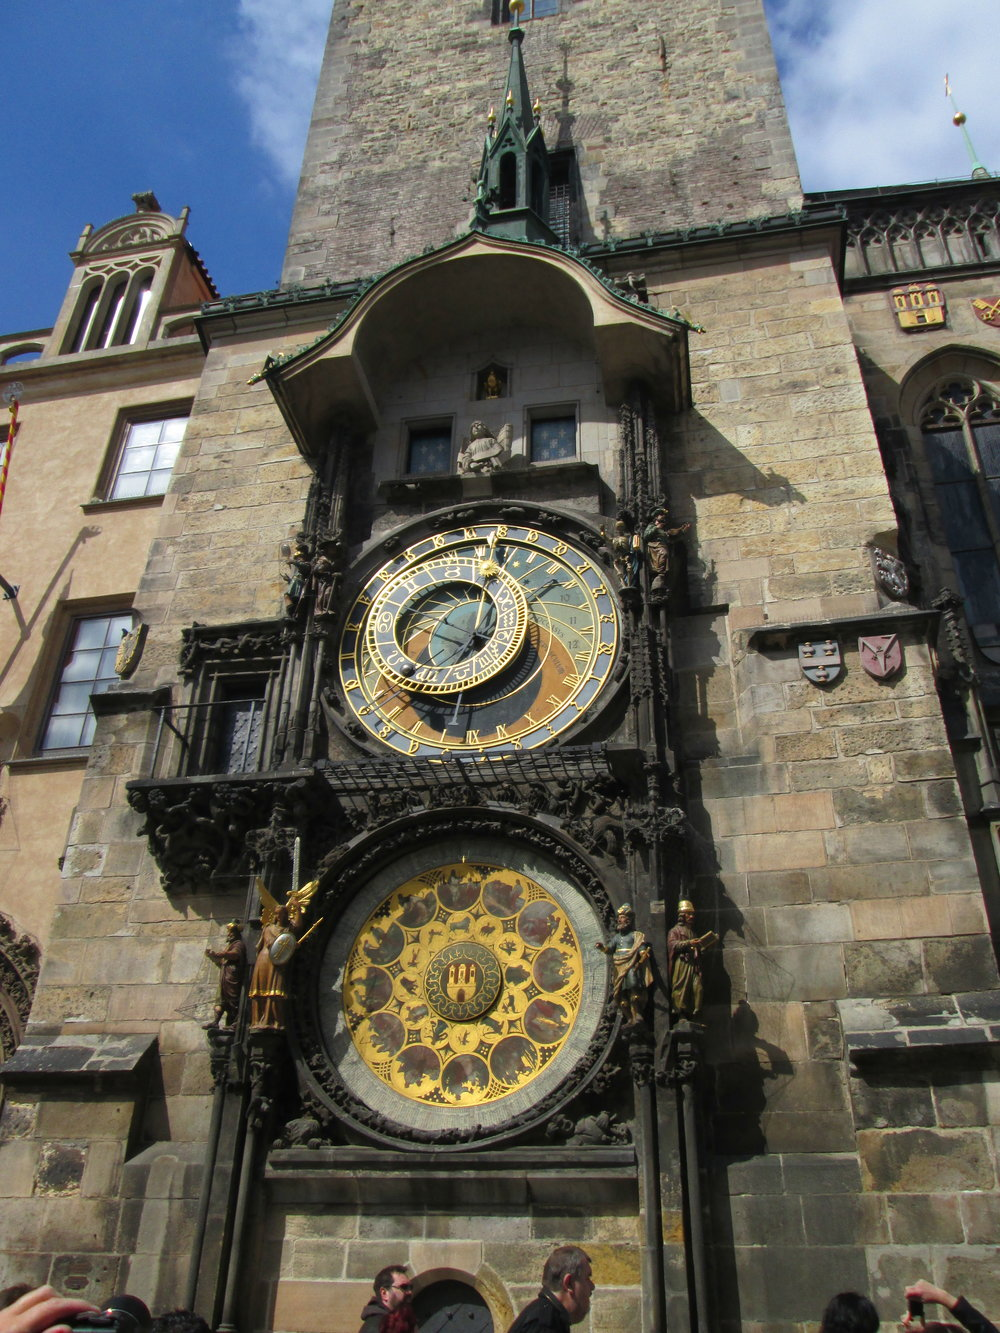 Astronomical Clock in Old Town